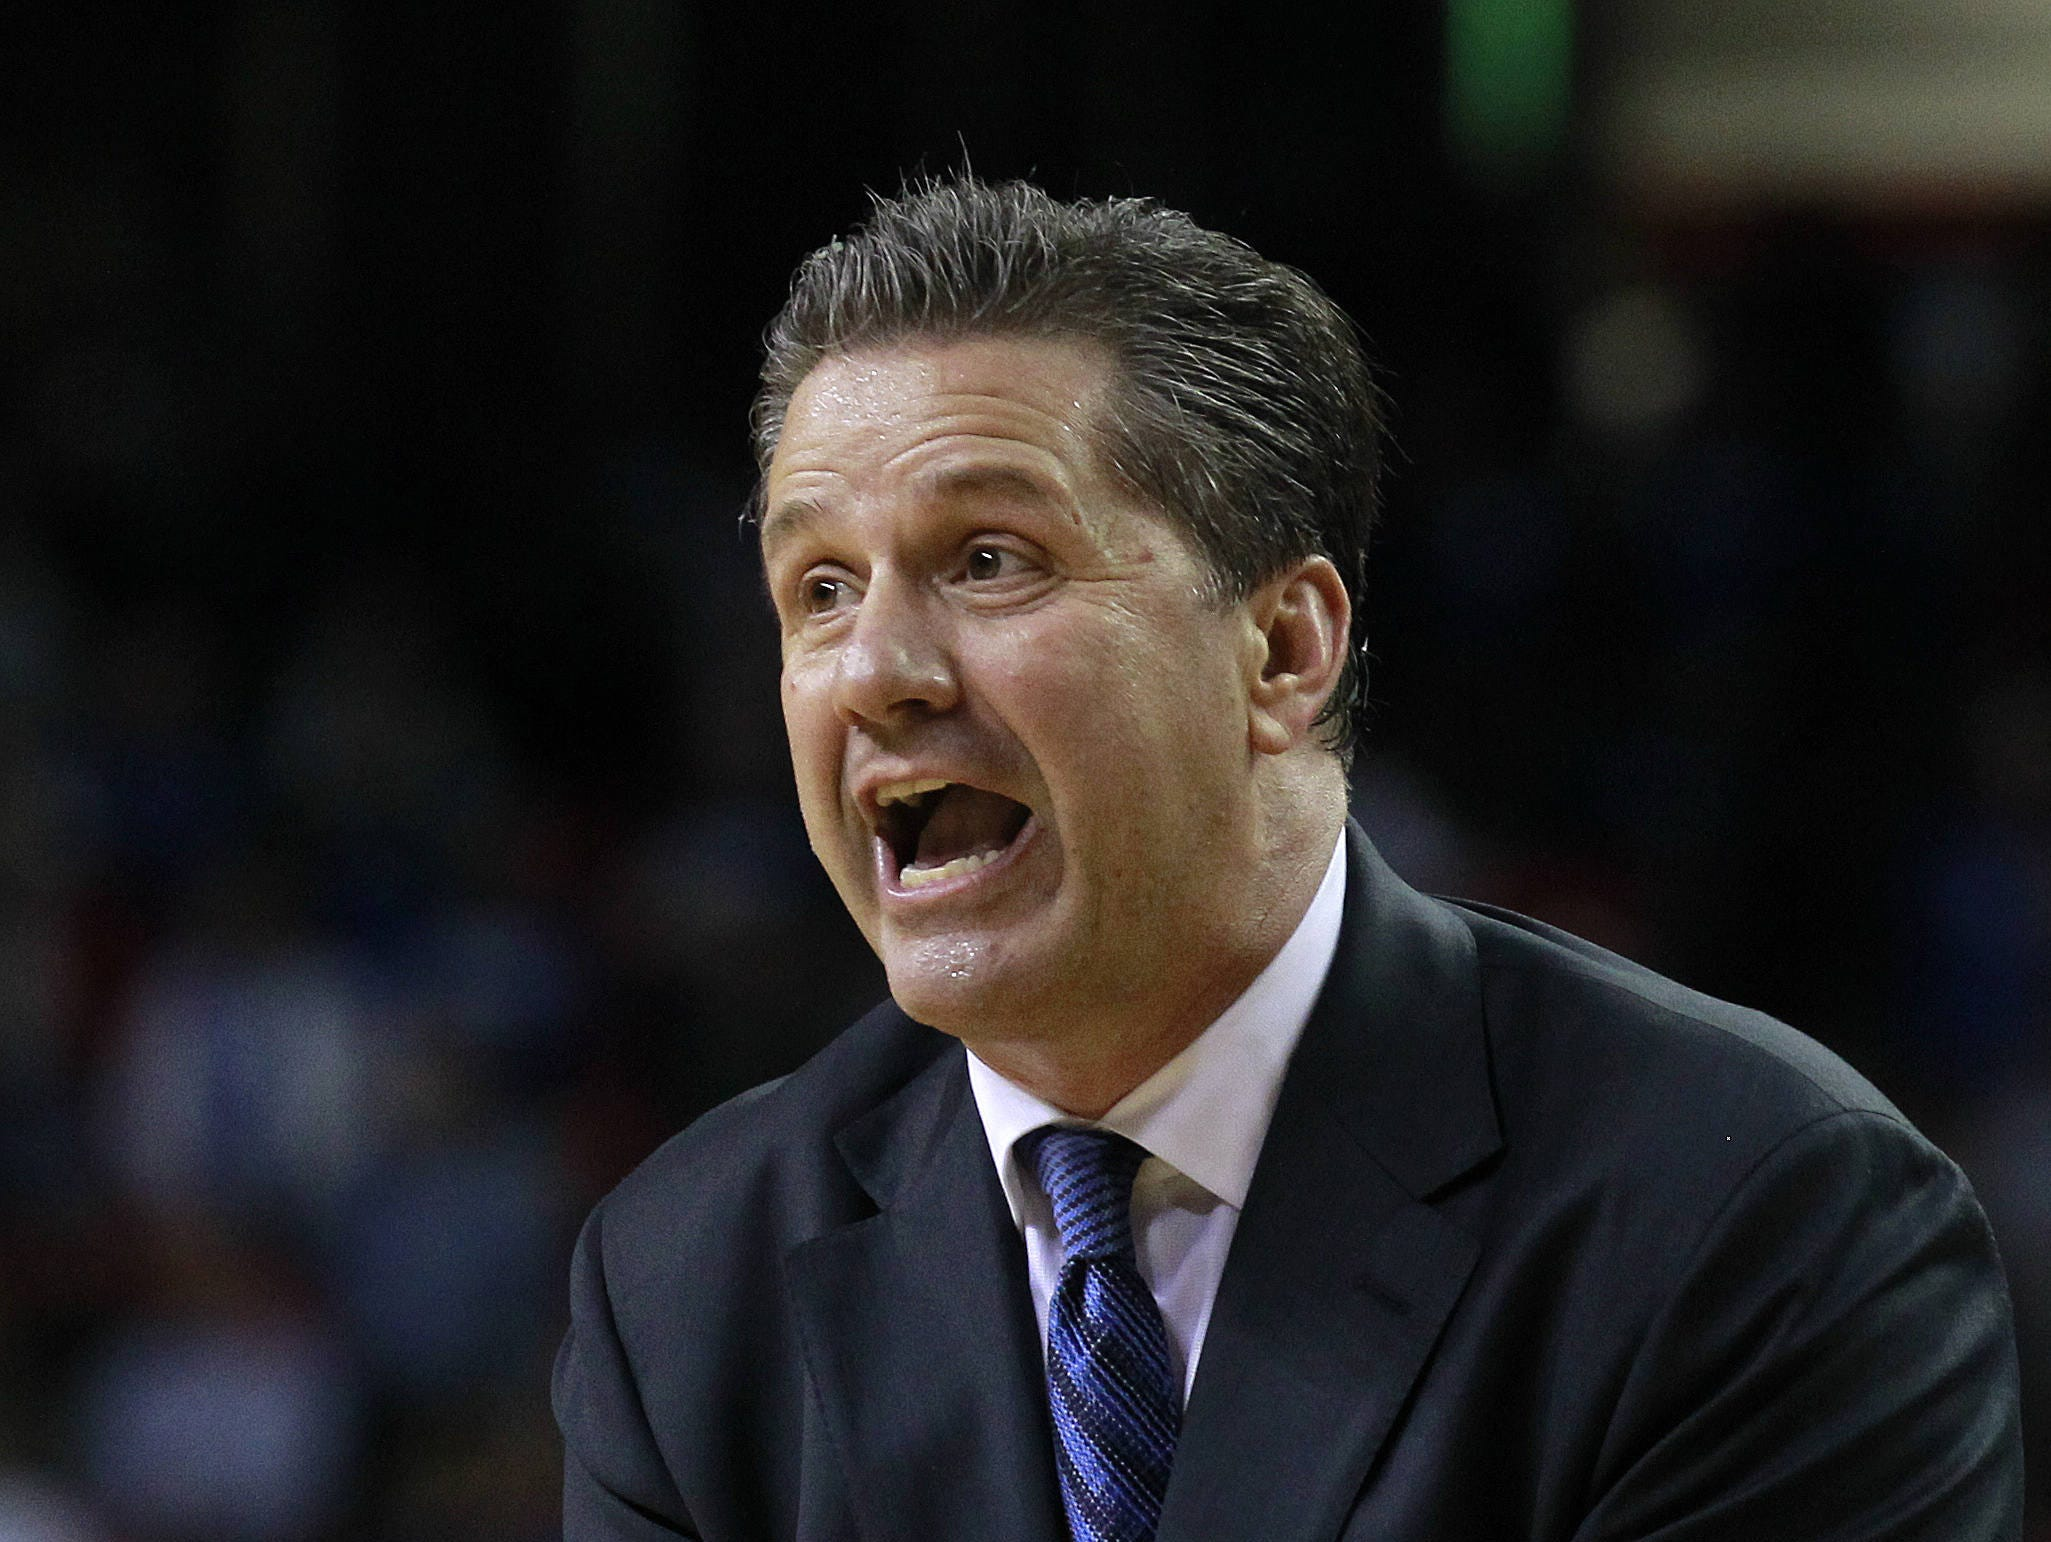 Kentucky head coach John Calipari reacts in the first half of an NCAA college basketball game against  Duke  in Atlanta, Tuesday, Nov. 13, 2012.